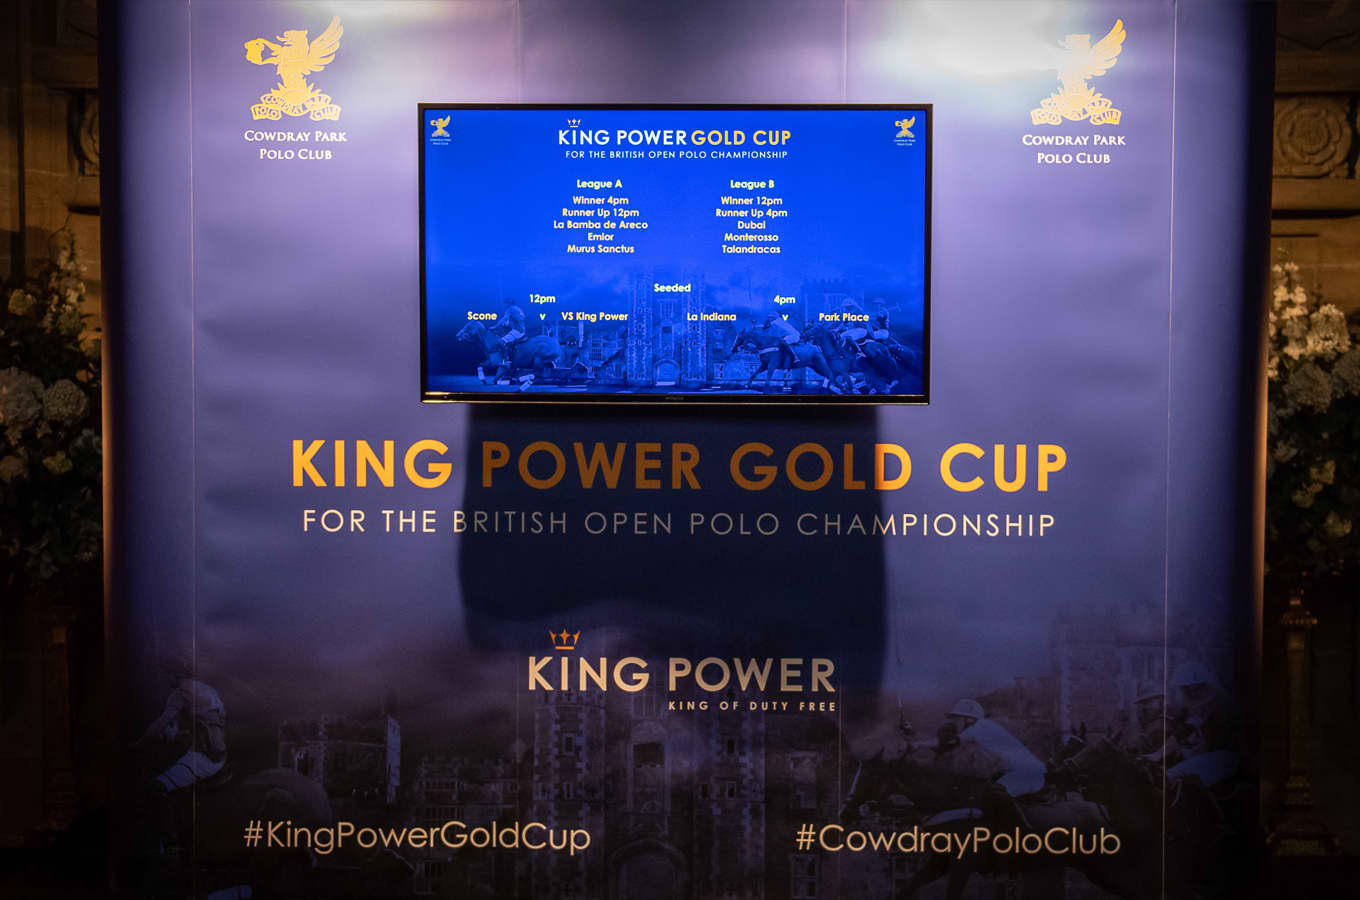 The King Power Gold Cup 2019